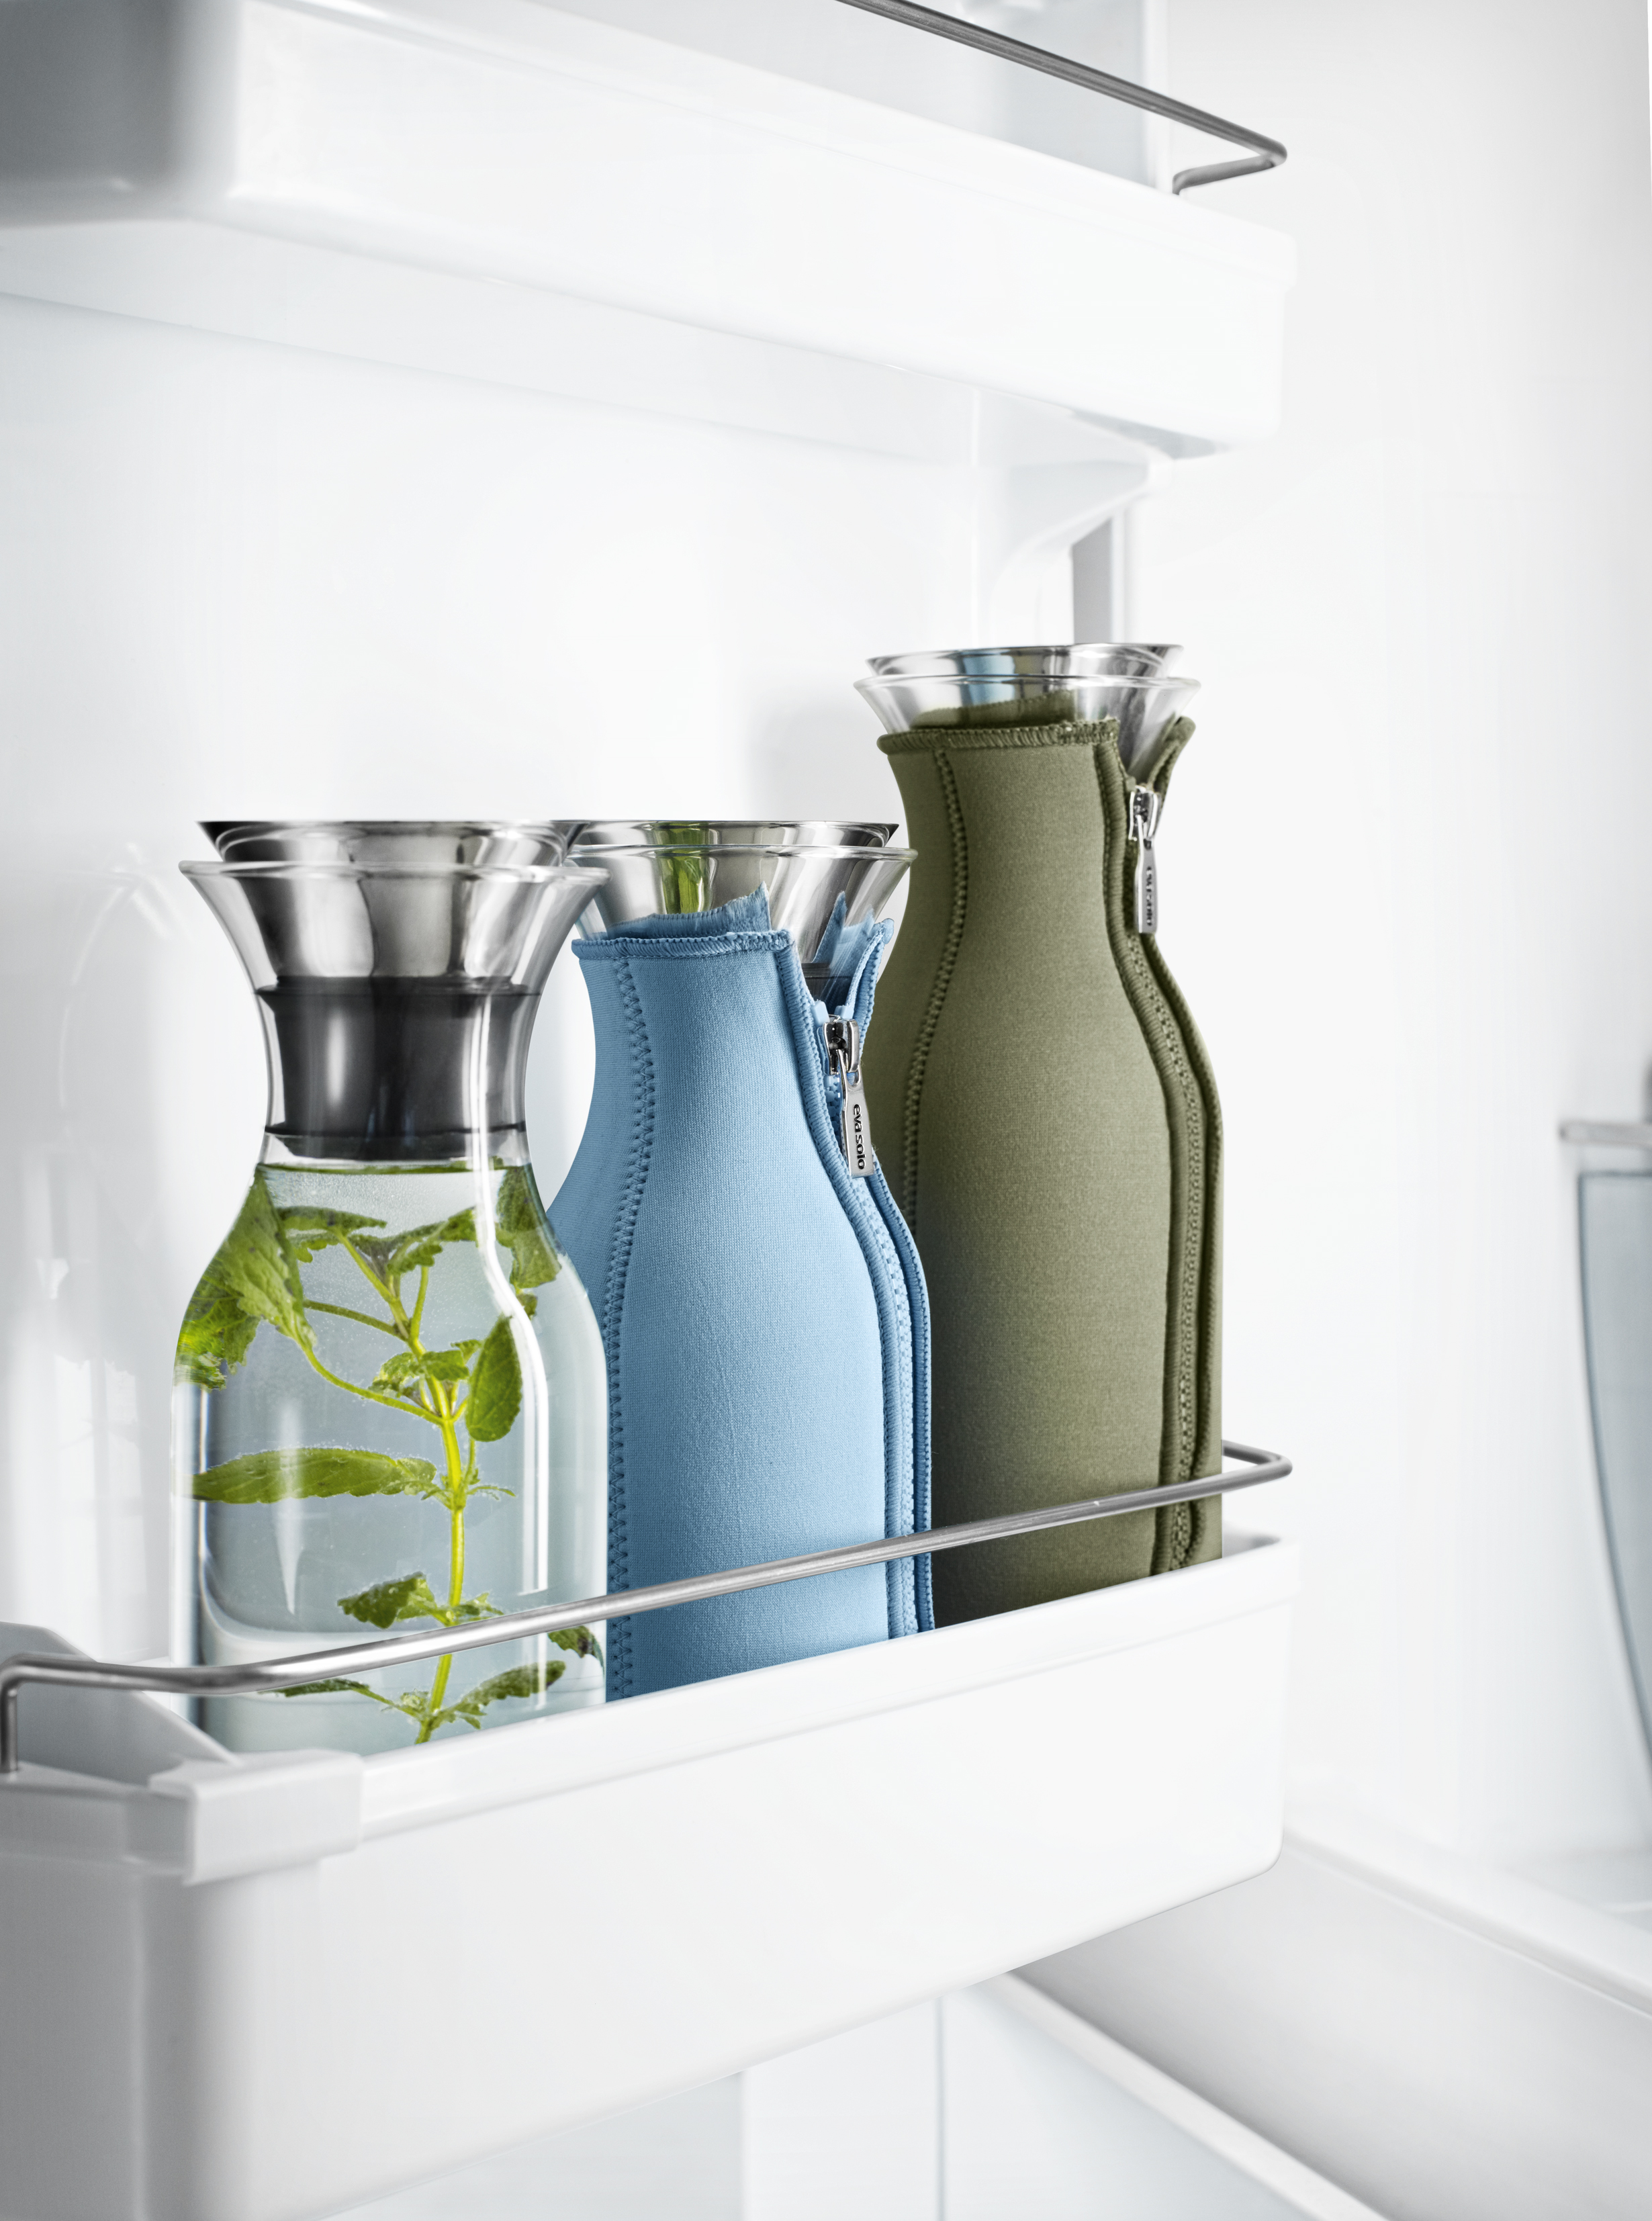 fridge carafes in fridge 568042, 567510